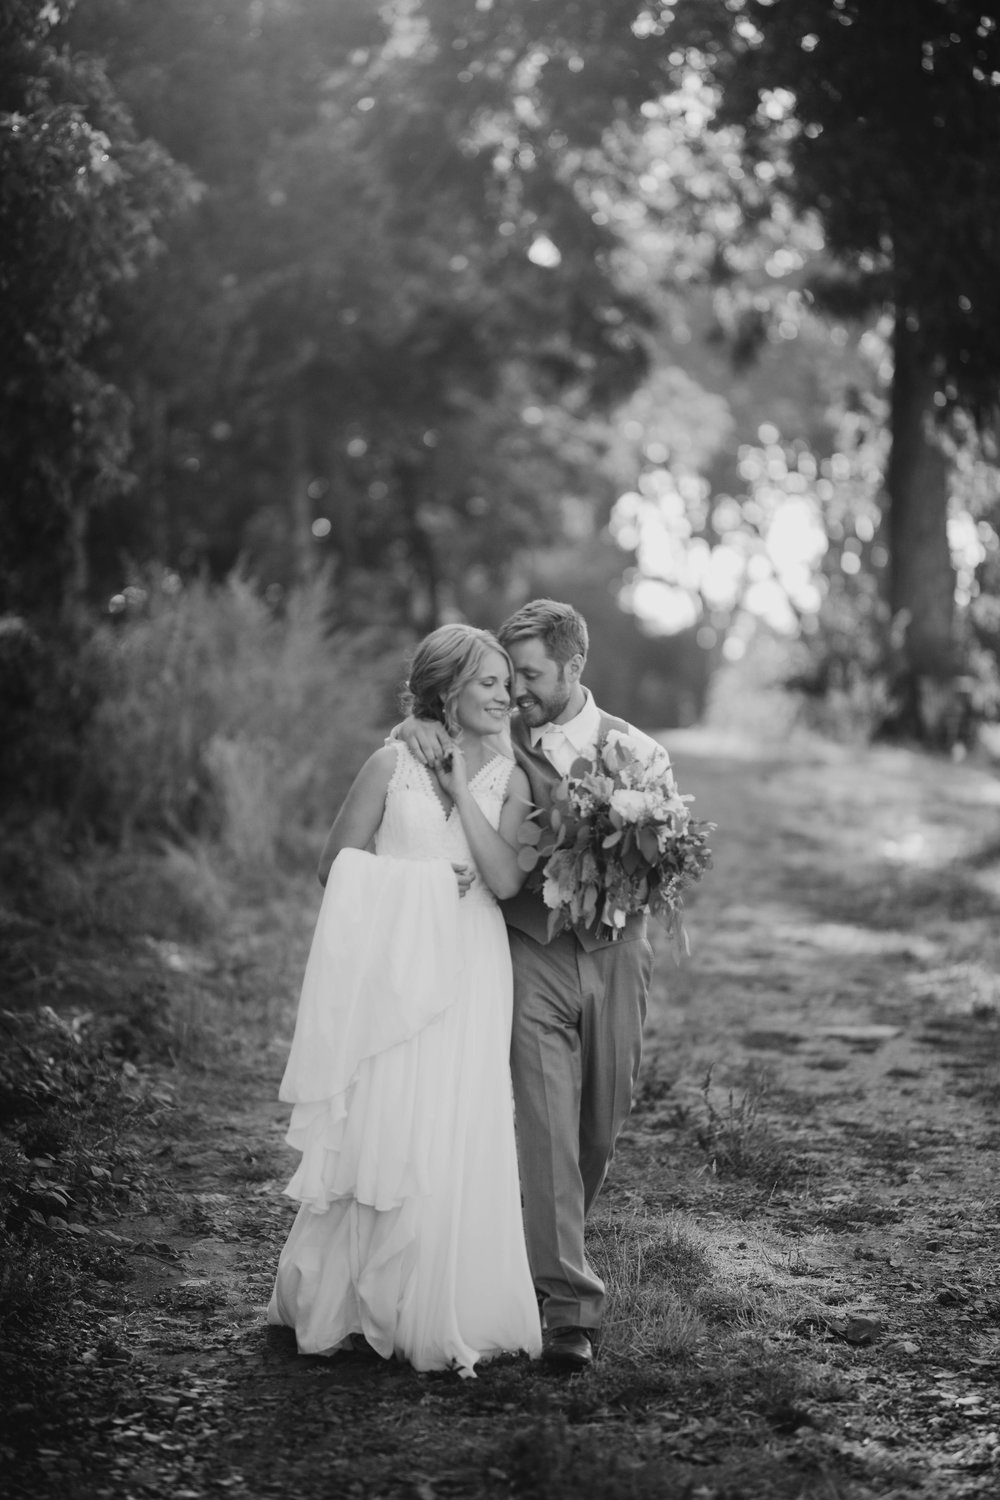 Utah-Wedding-Photographer-41.jpg